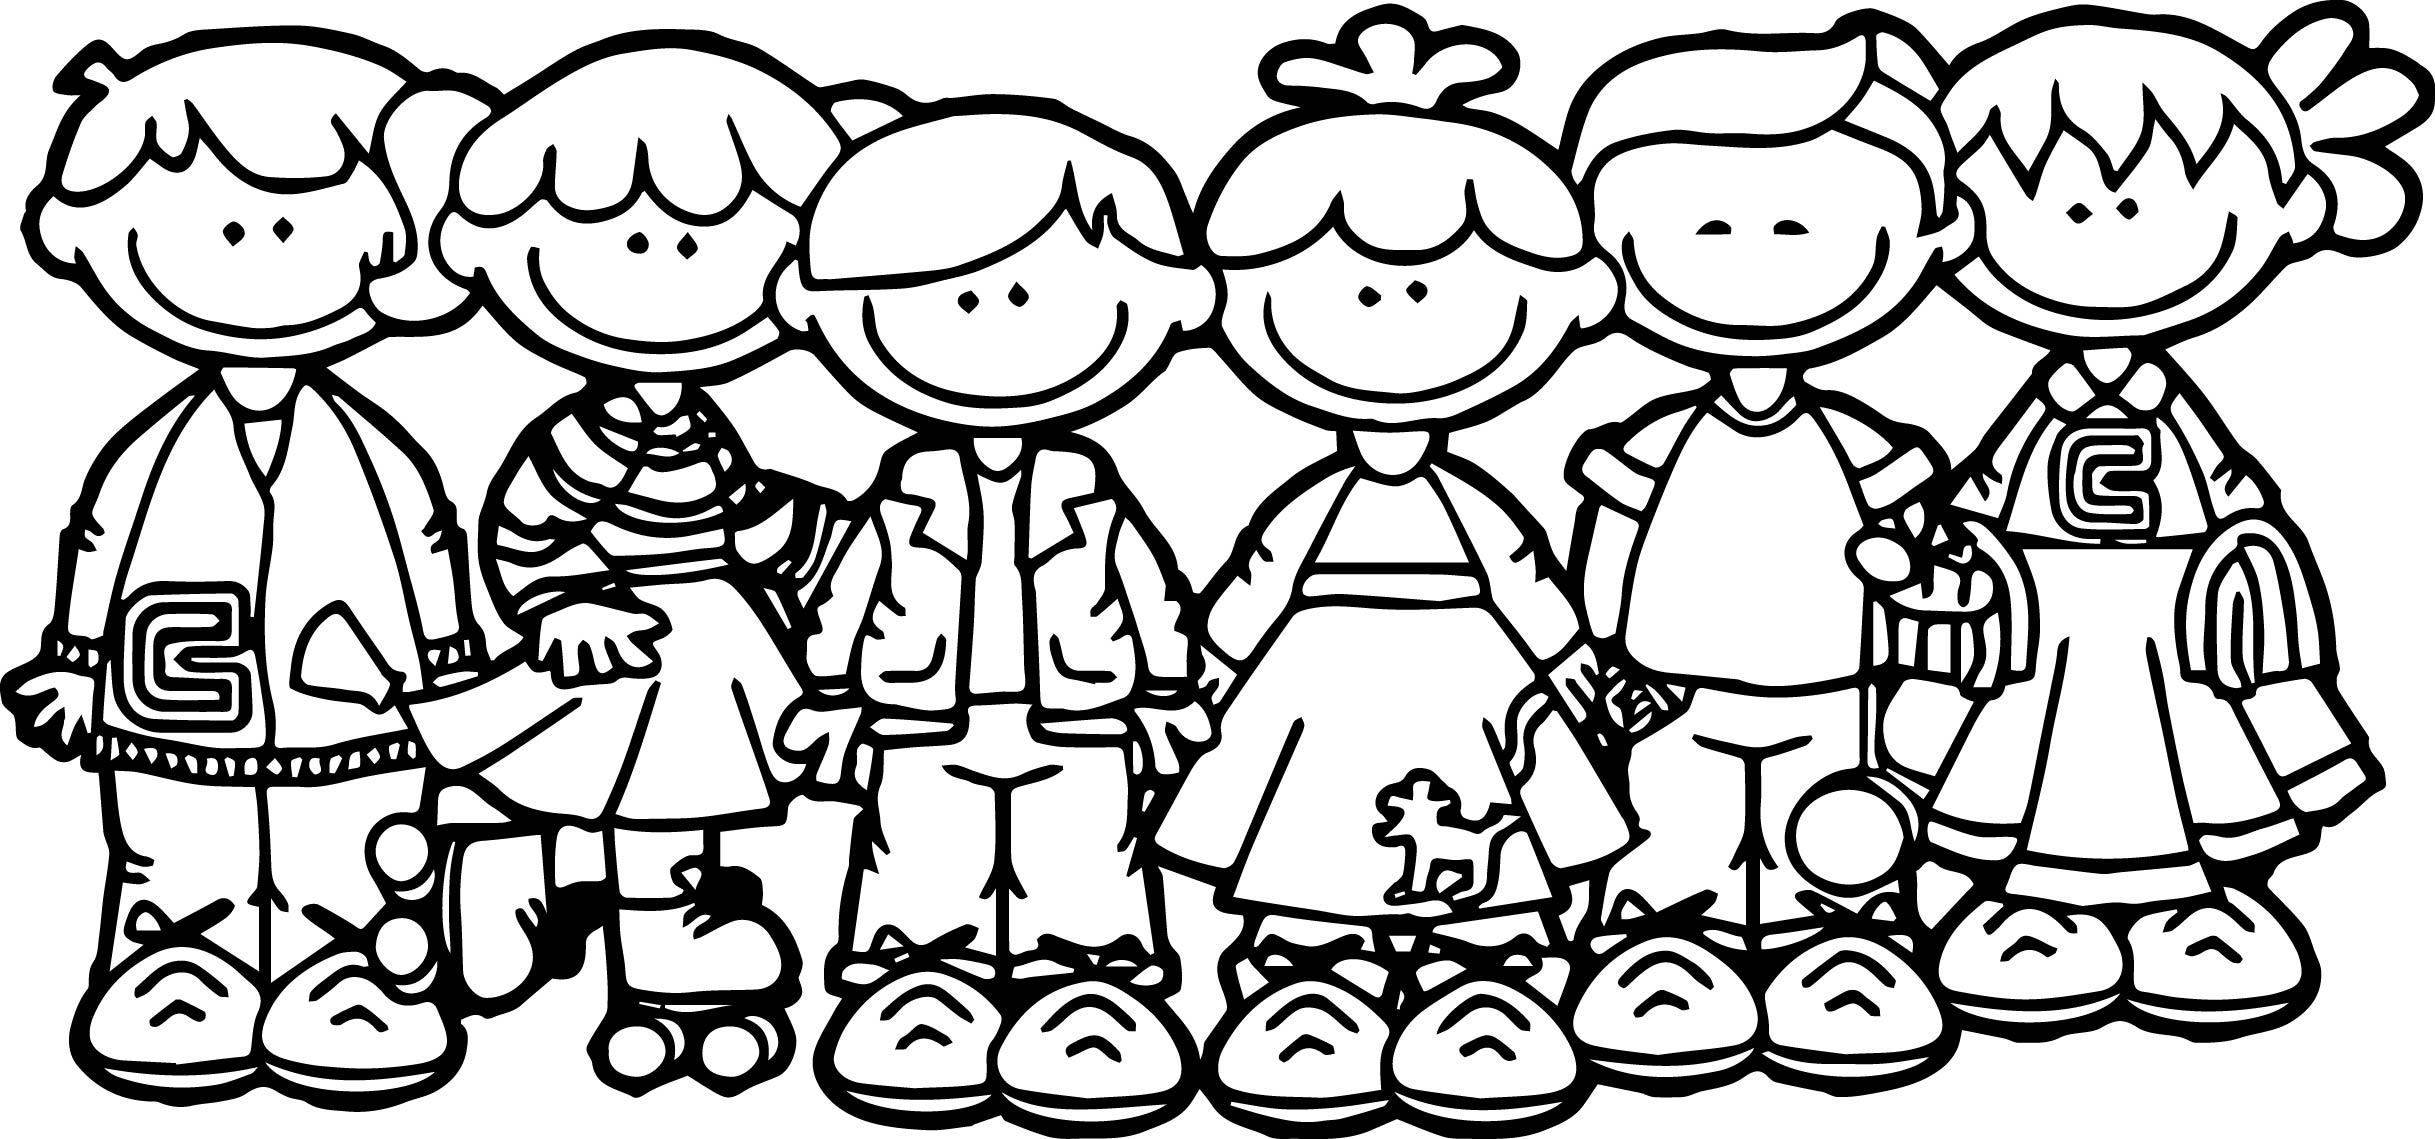 100 Days Of School Children Coloring Page Wecoloringpage Day Of School Coloring Pages